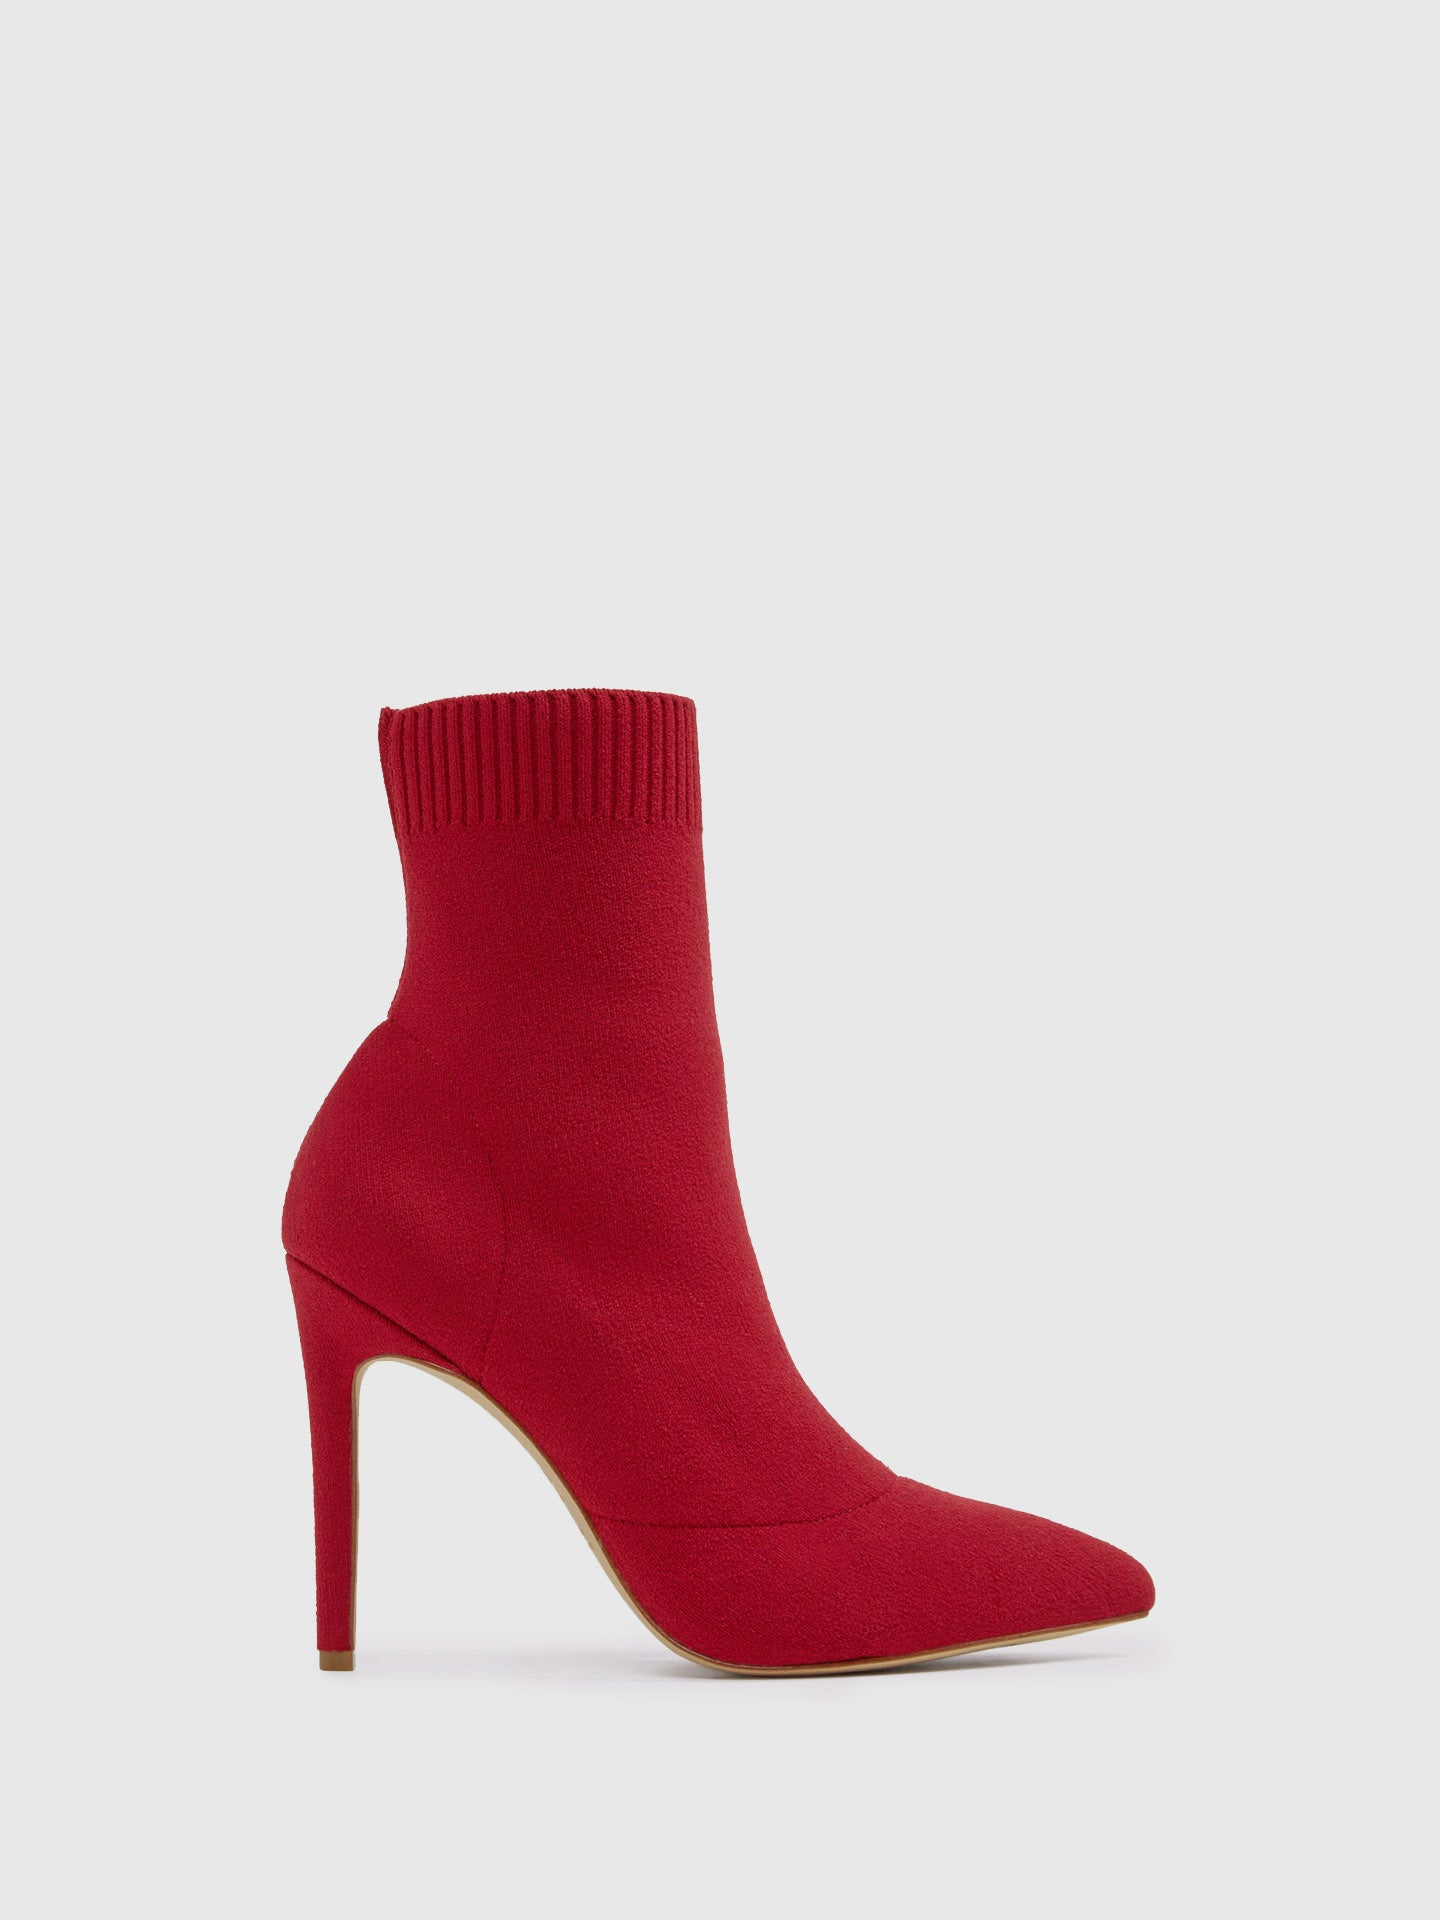 Aldo Red Sock Ankle Boots